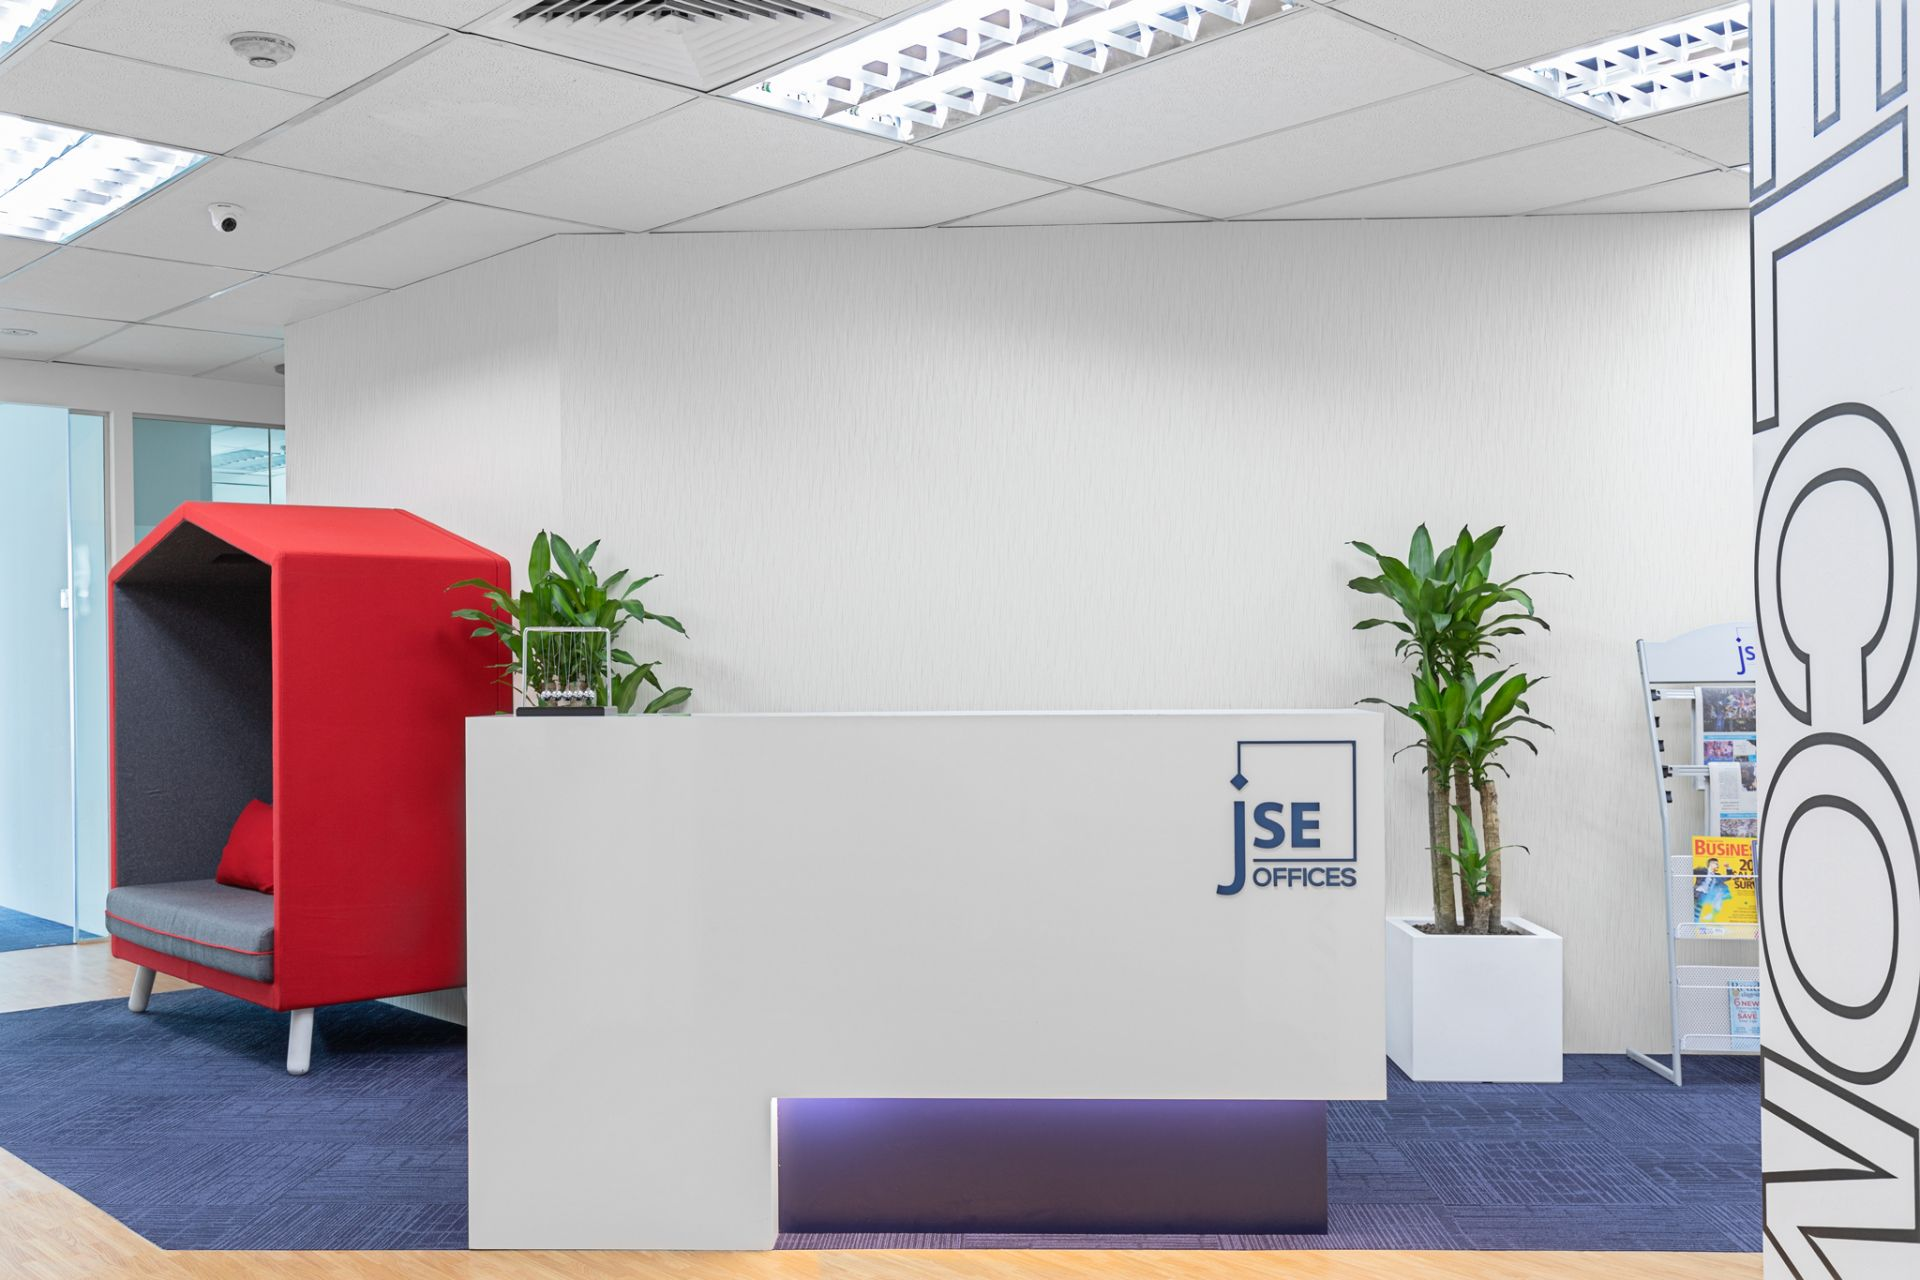 JSE Offices, Singapore